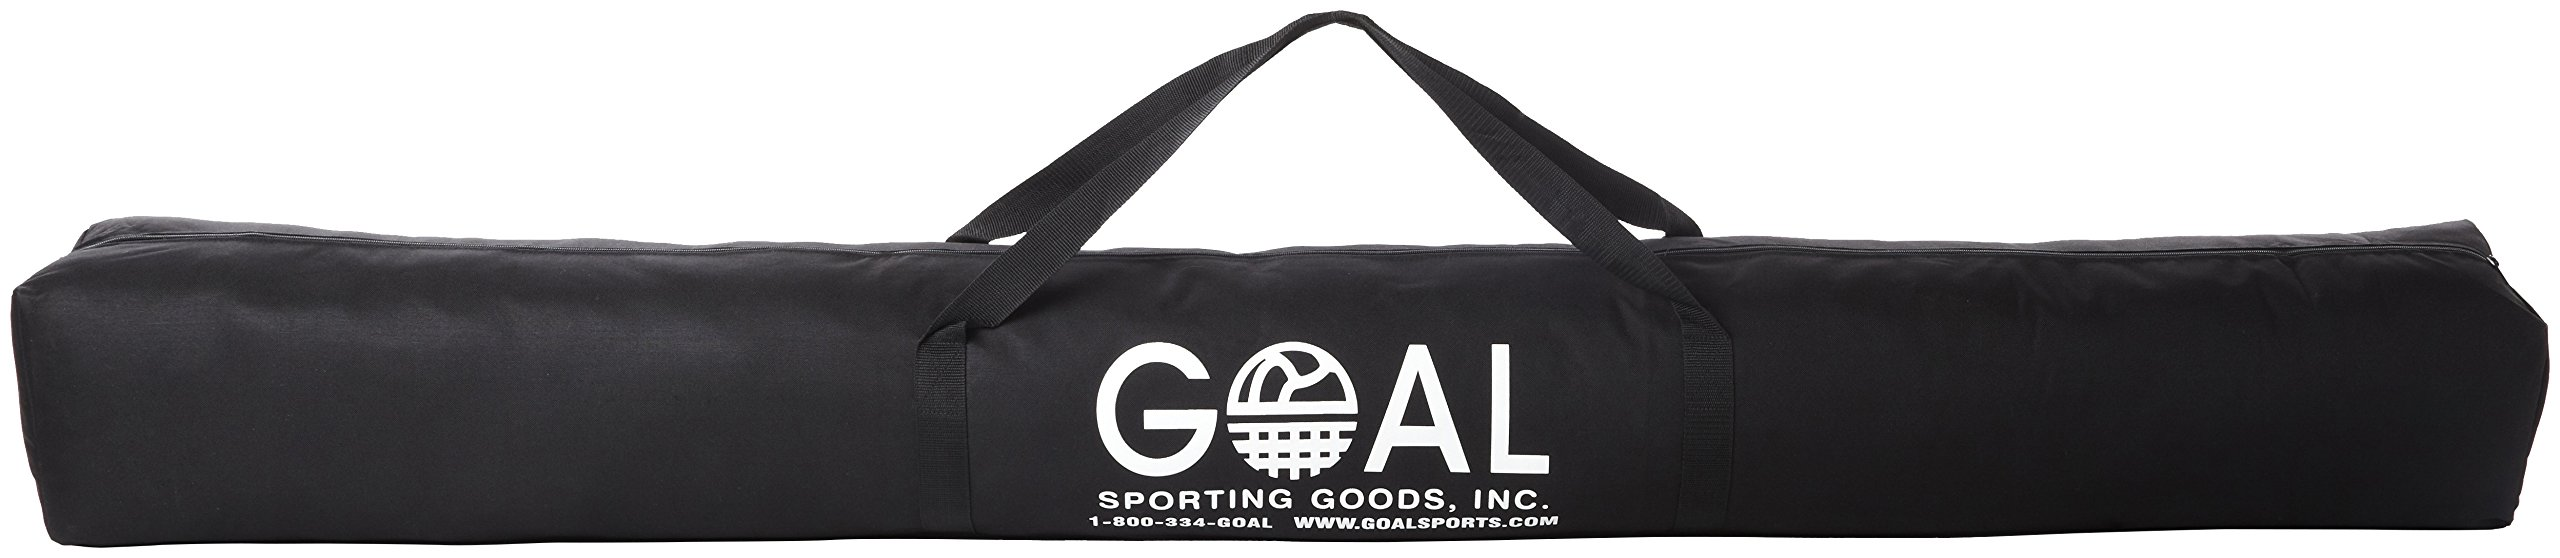 Goal Sporting Goods Training Carry Bag by Goal Sporting Goods